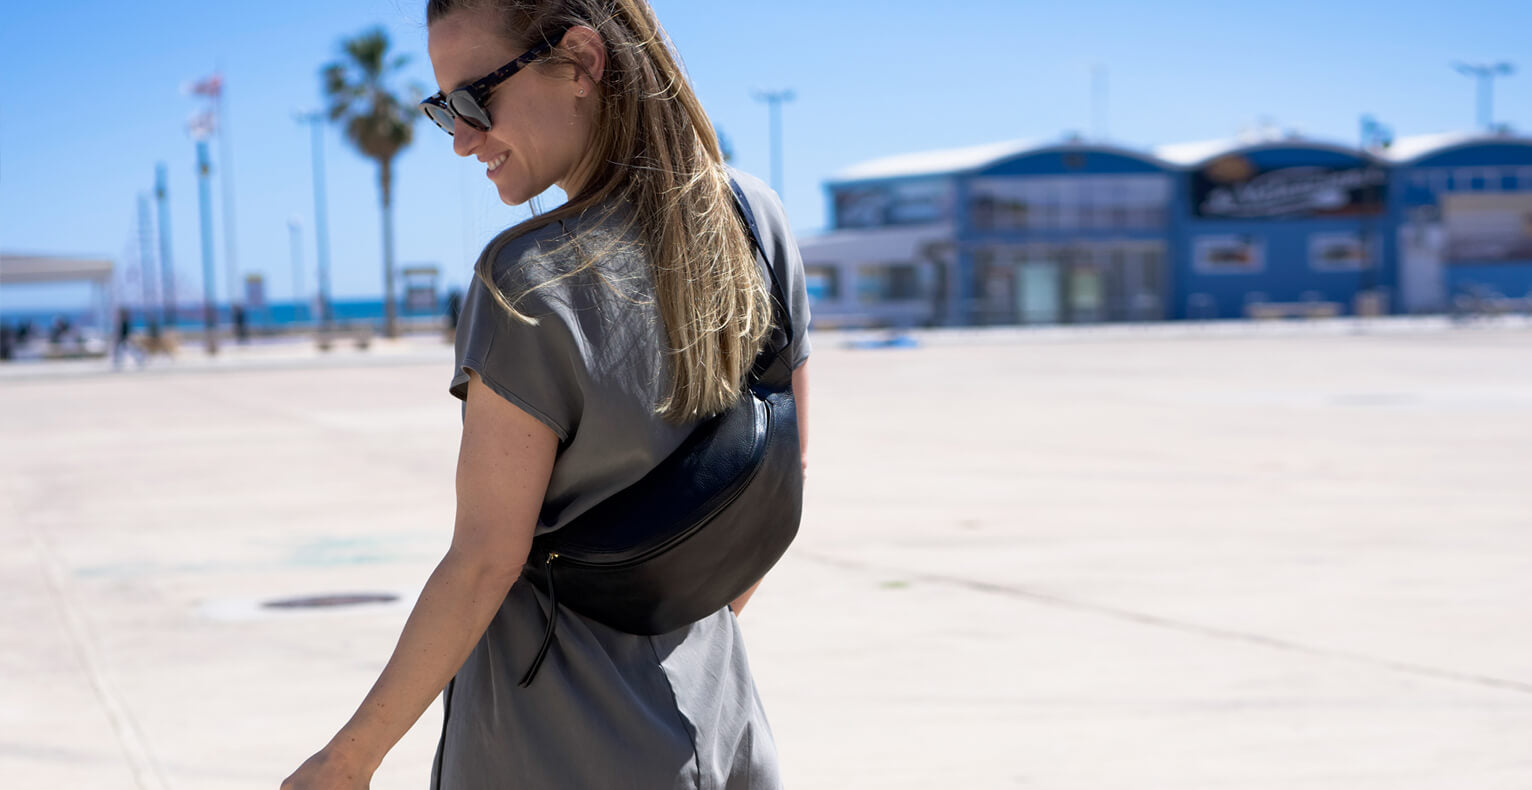 ebb6c5aee 5 Reasons Why Fanny Packs Are The Best Bags Ever - DAPHNY RAES